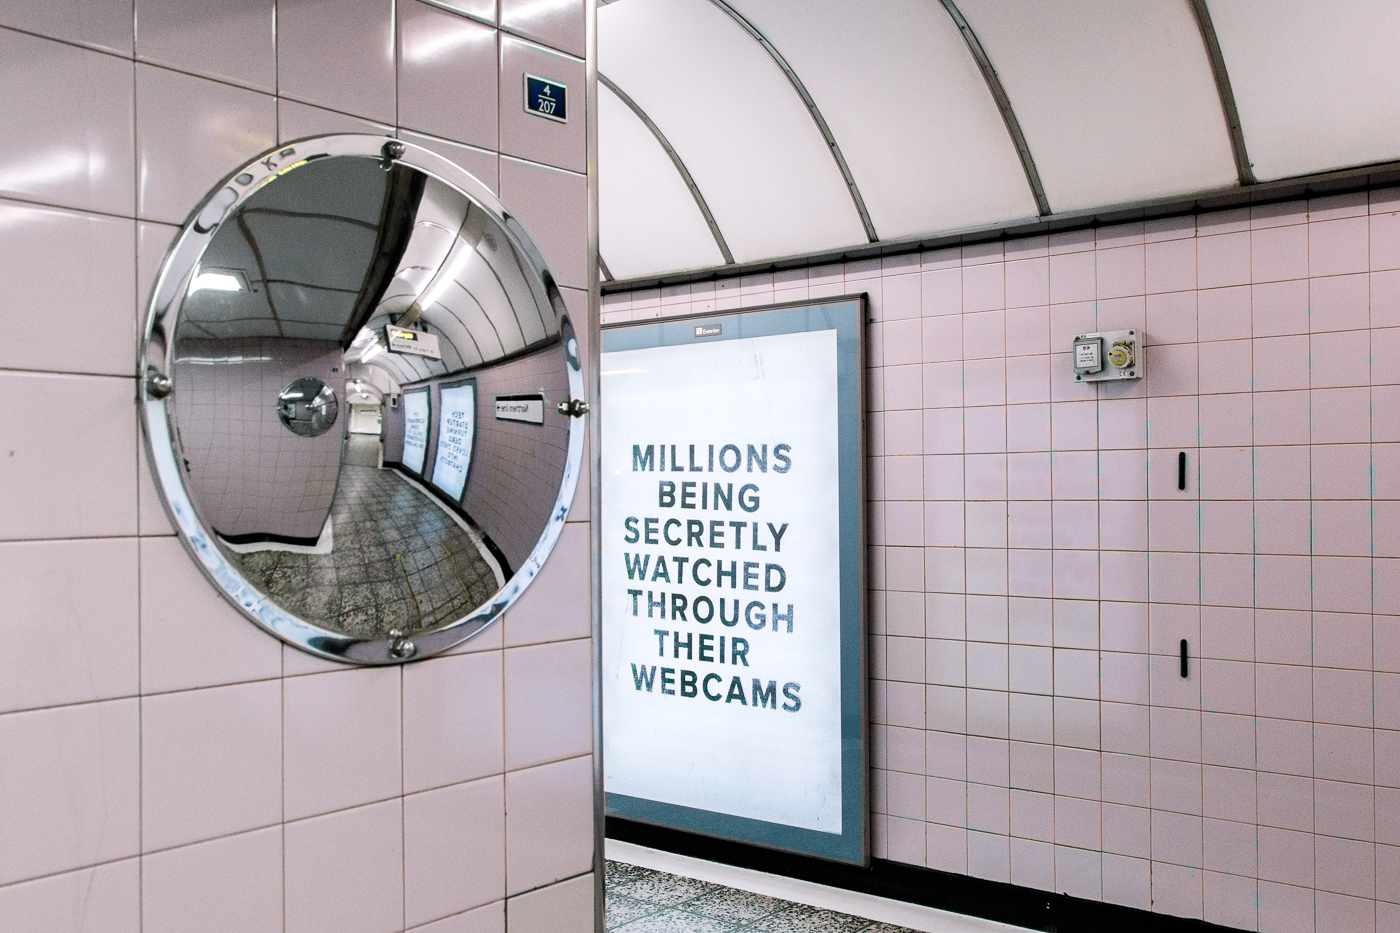 "Pop-up Netflix - Black Mirror à Old Street Station, Londres. Un miroir rond dans un couloir devant un panneau ""Millions being secretly watched through their webcam"""